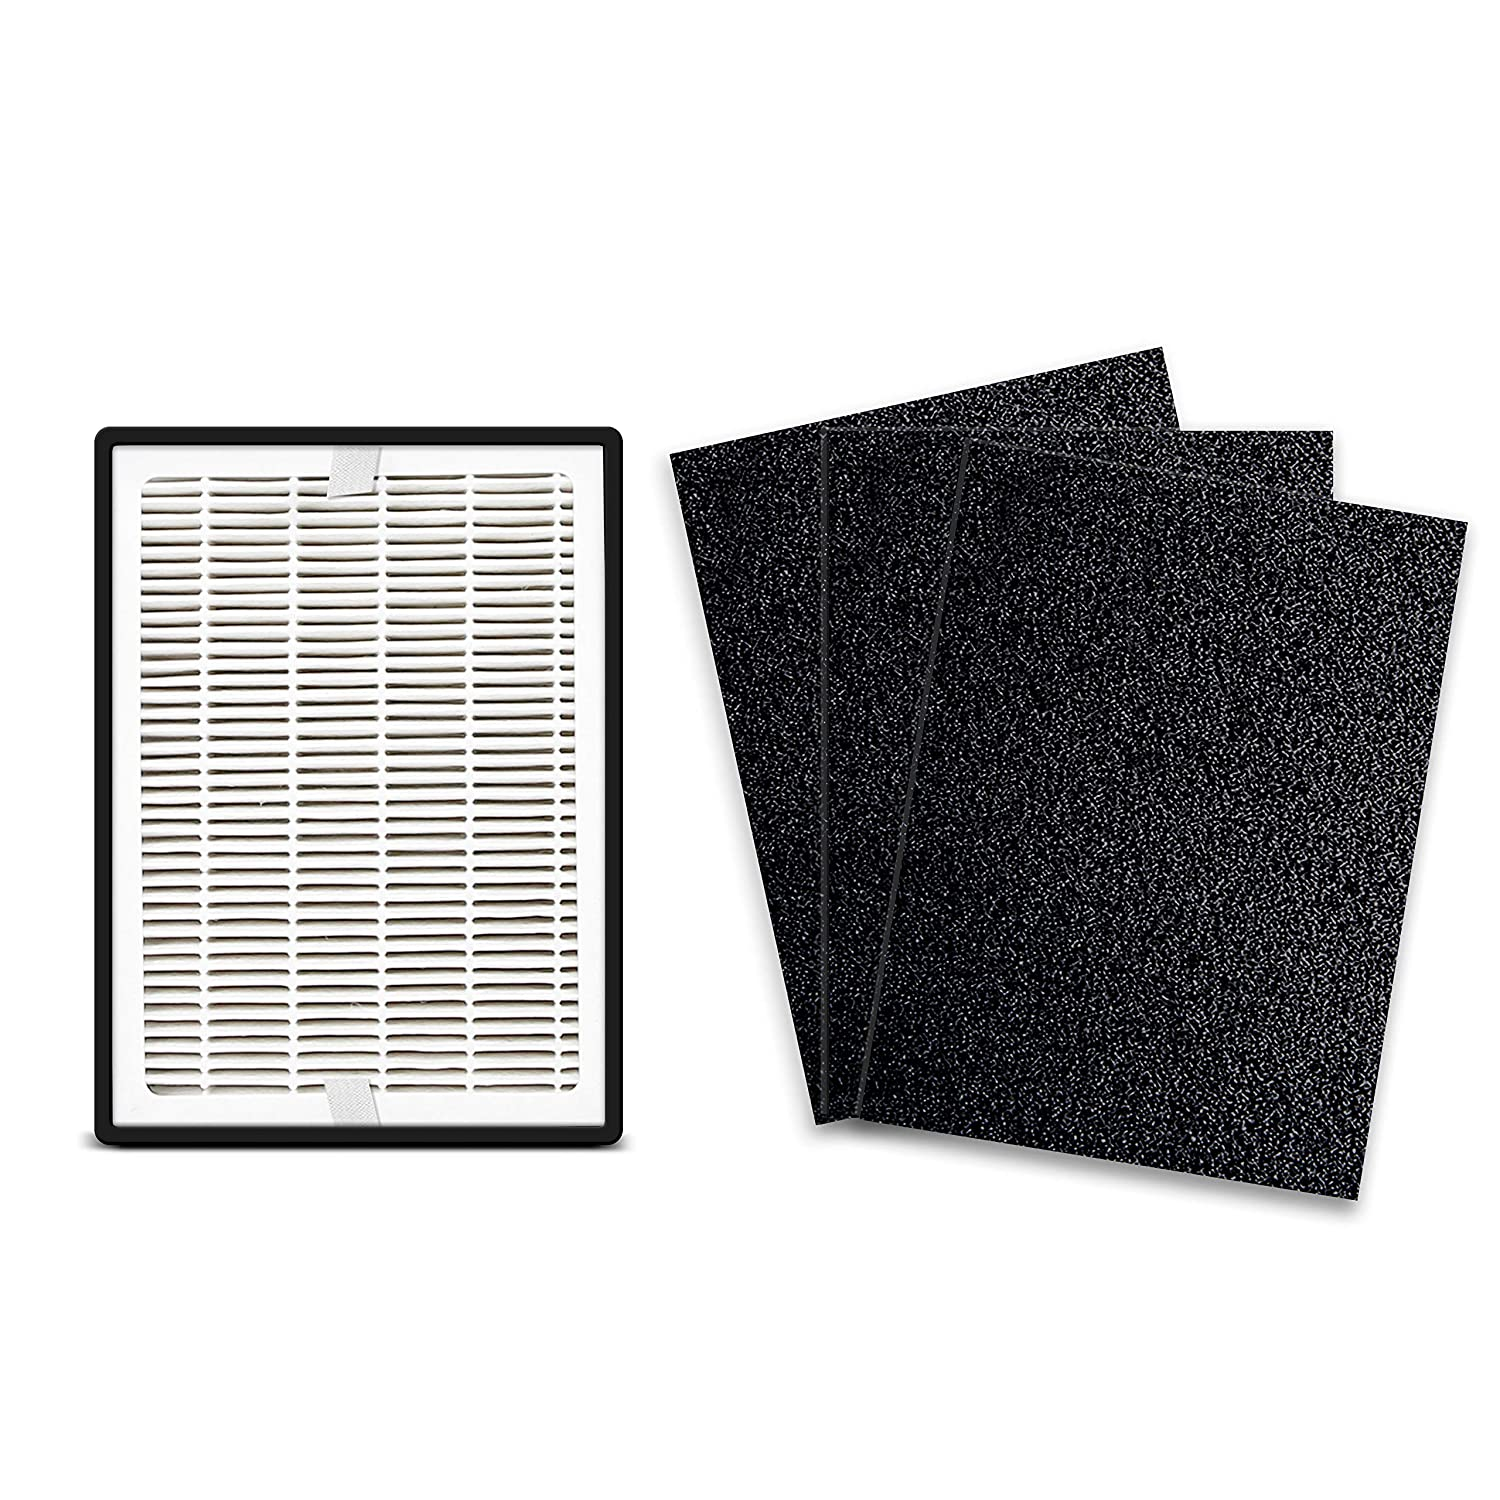 LEVOIT LV-H126 Air Purifier Replacement Filter, True HEPA and Activated Carbon Set, LV-H126-RF, 2 Extra Pre-Filters